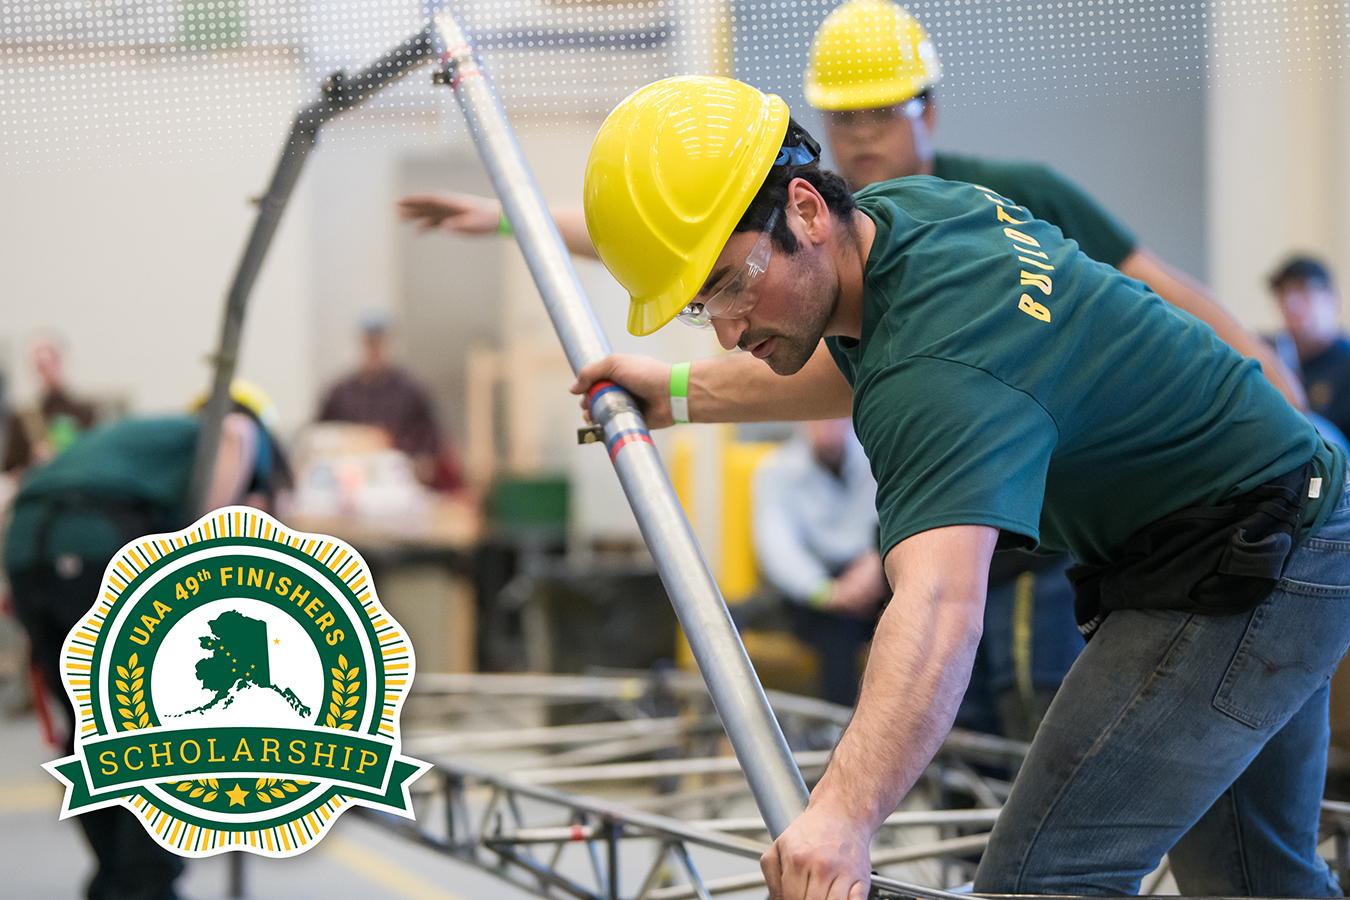 UAA students competing in the annual steel bridge competition